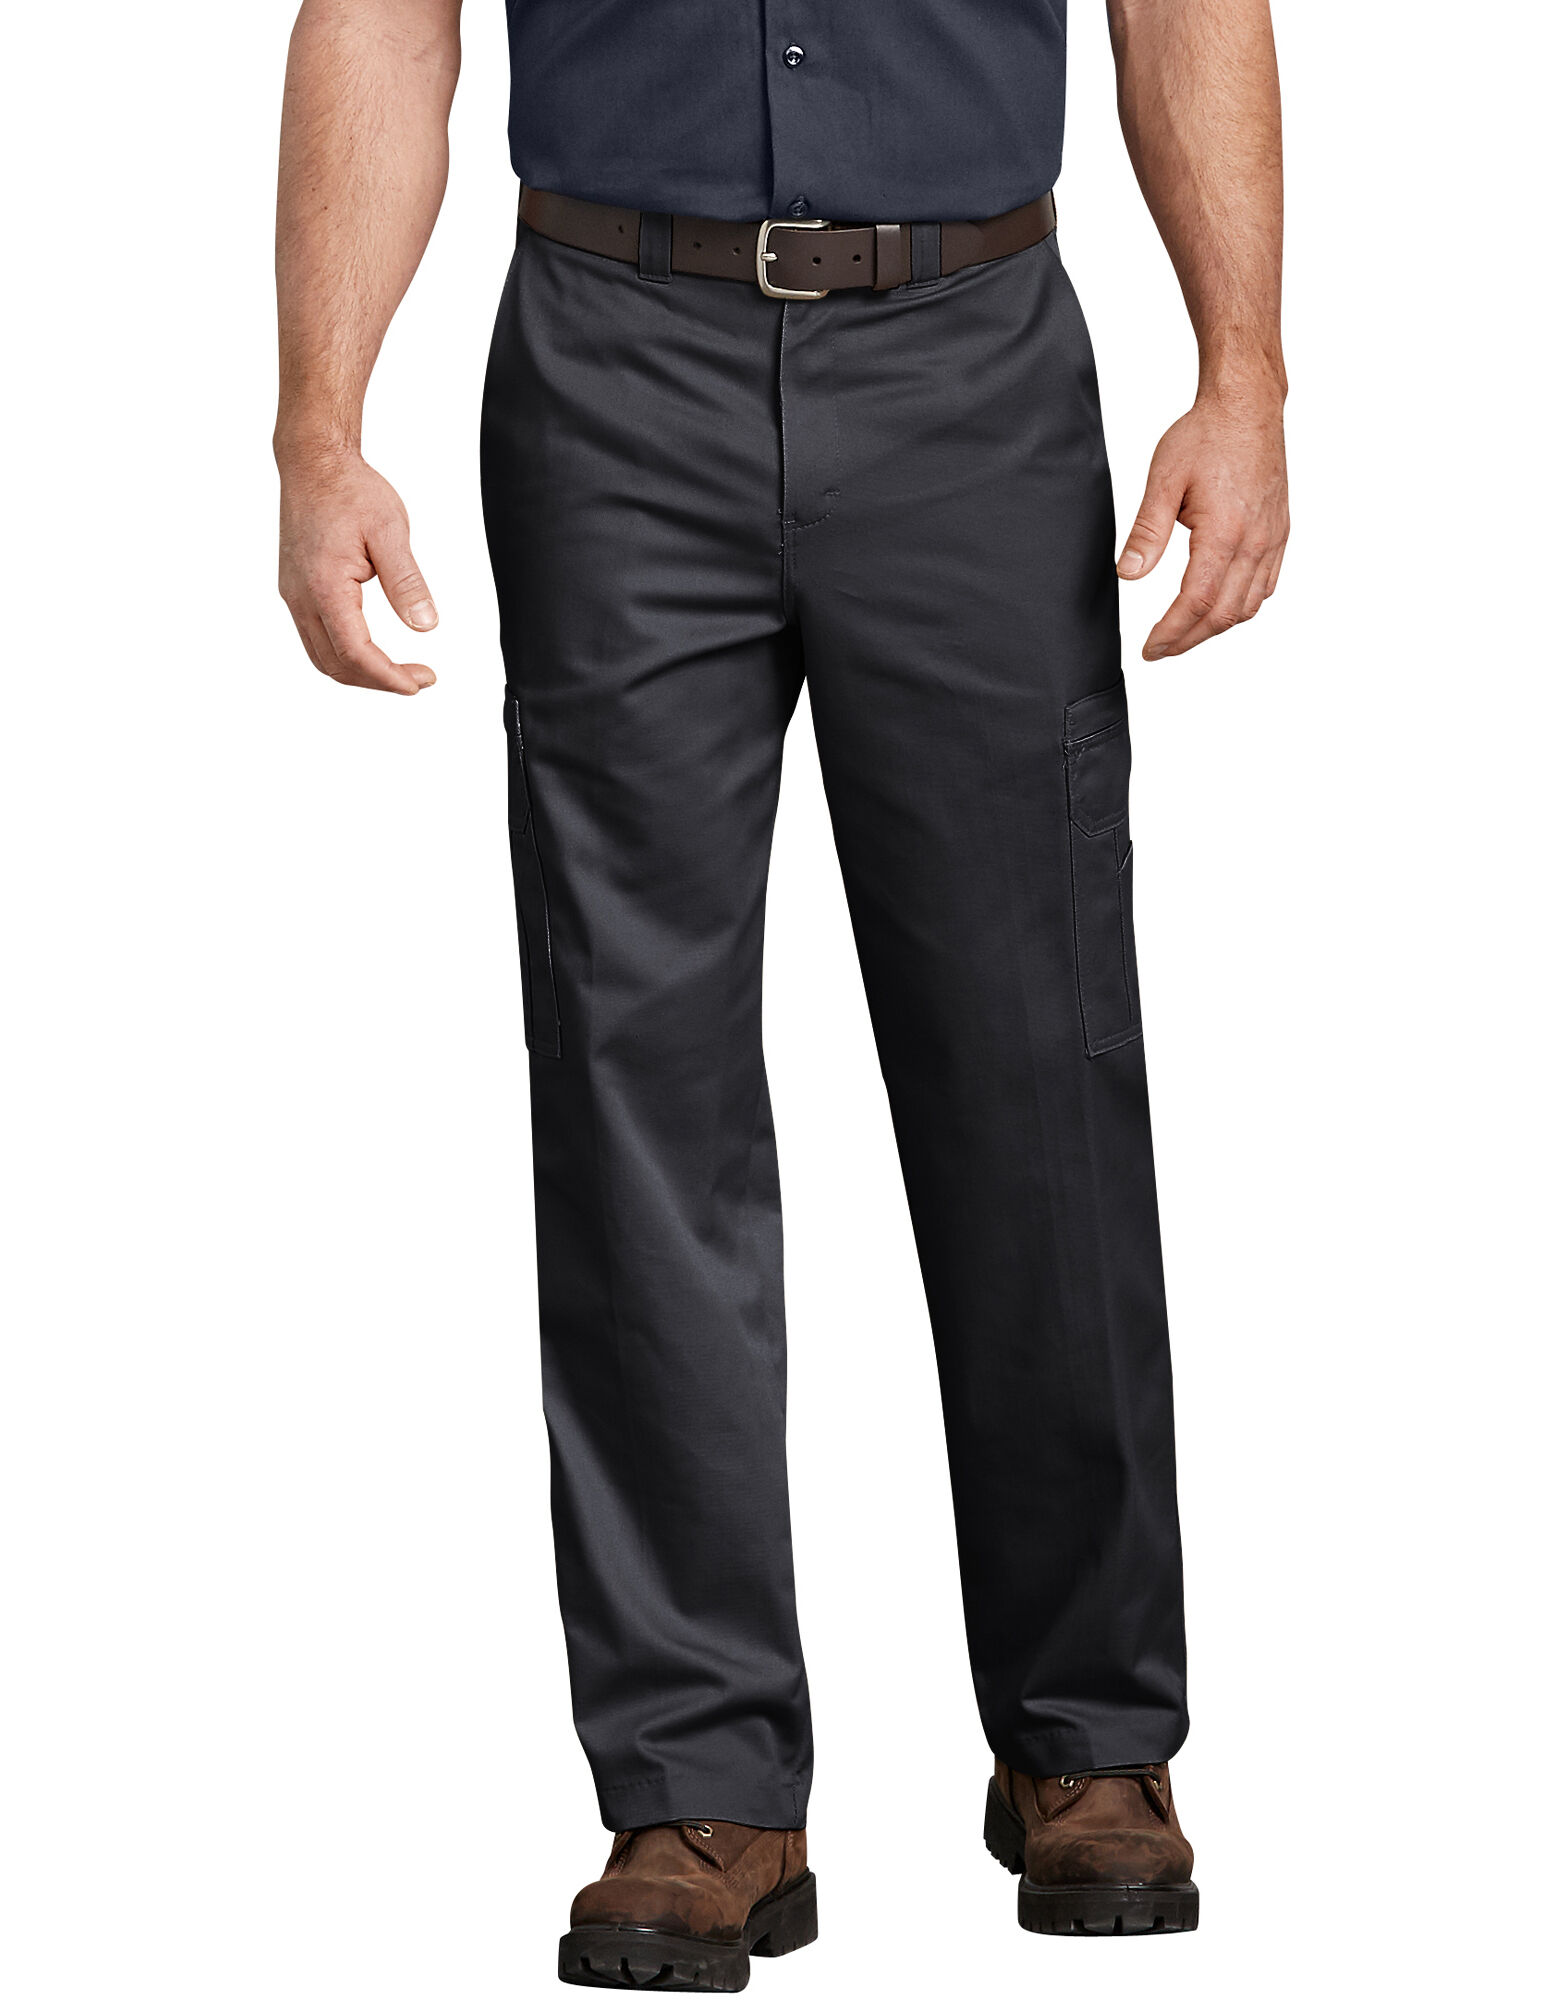 Industrial Relaxed Fit Cotton Cargo Pant   Mens Pants ...